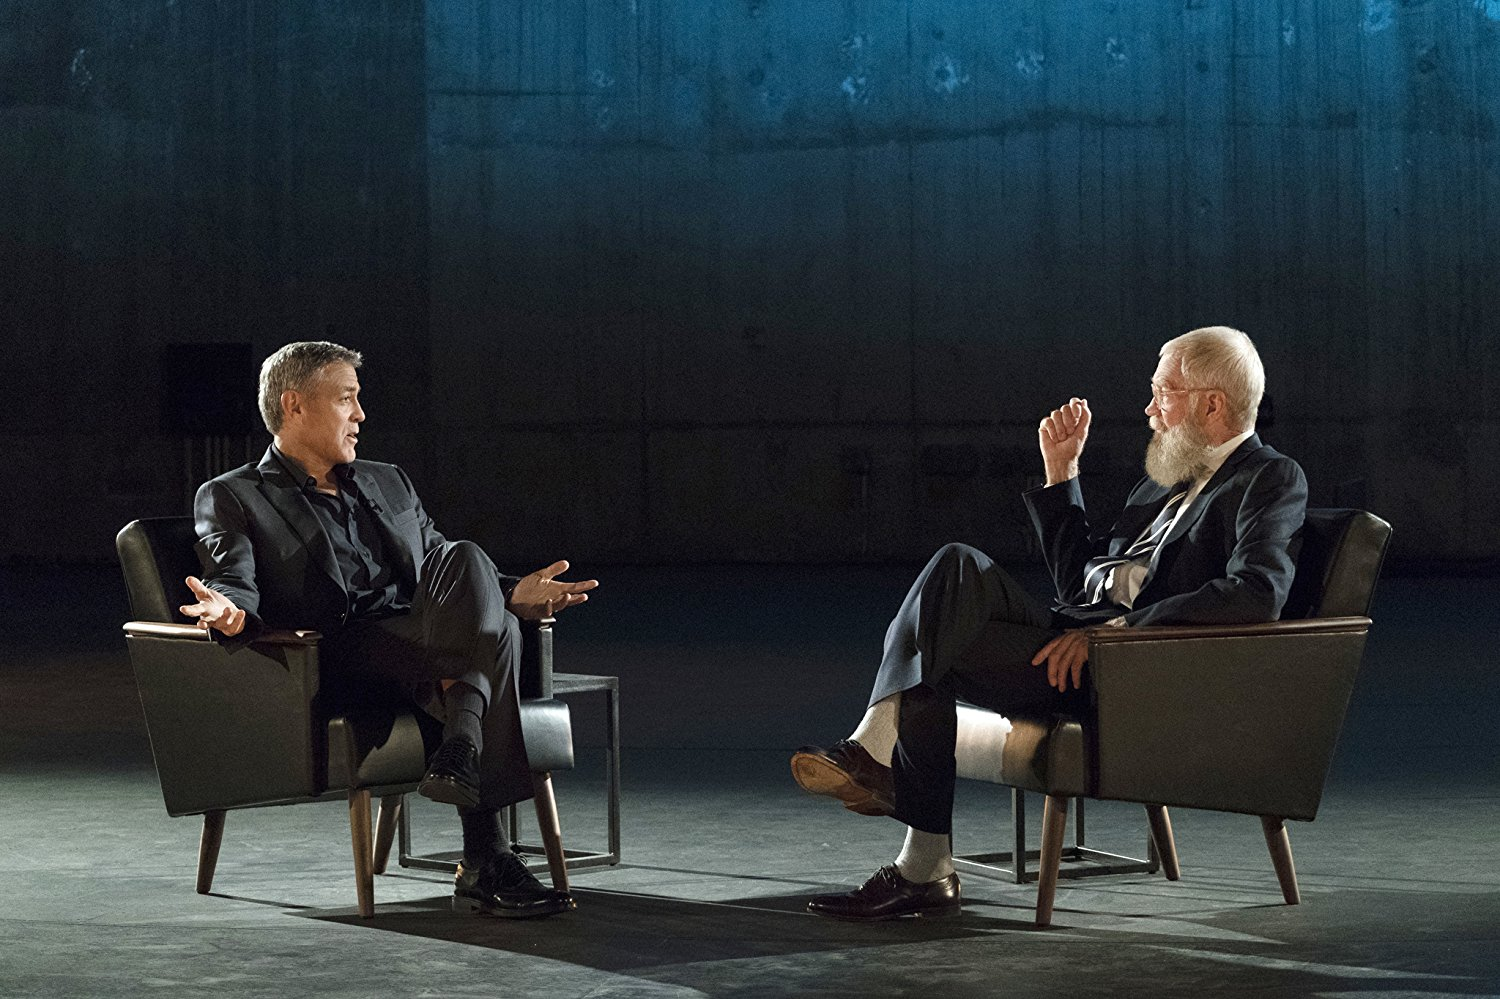 My Next Guest Needs No Introduction with David Letterman - Season 1